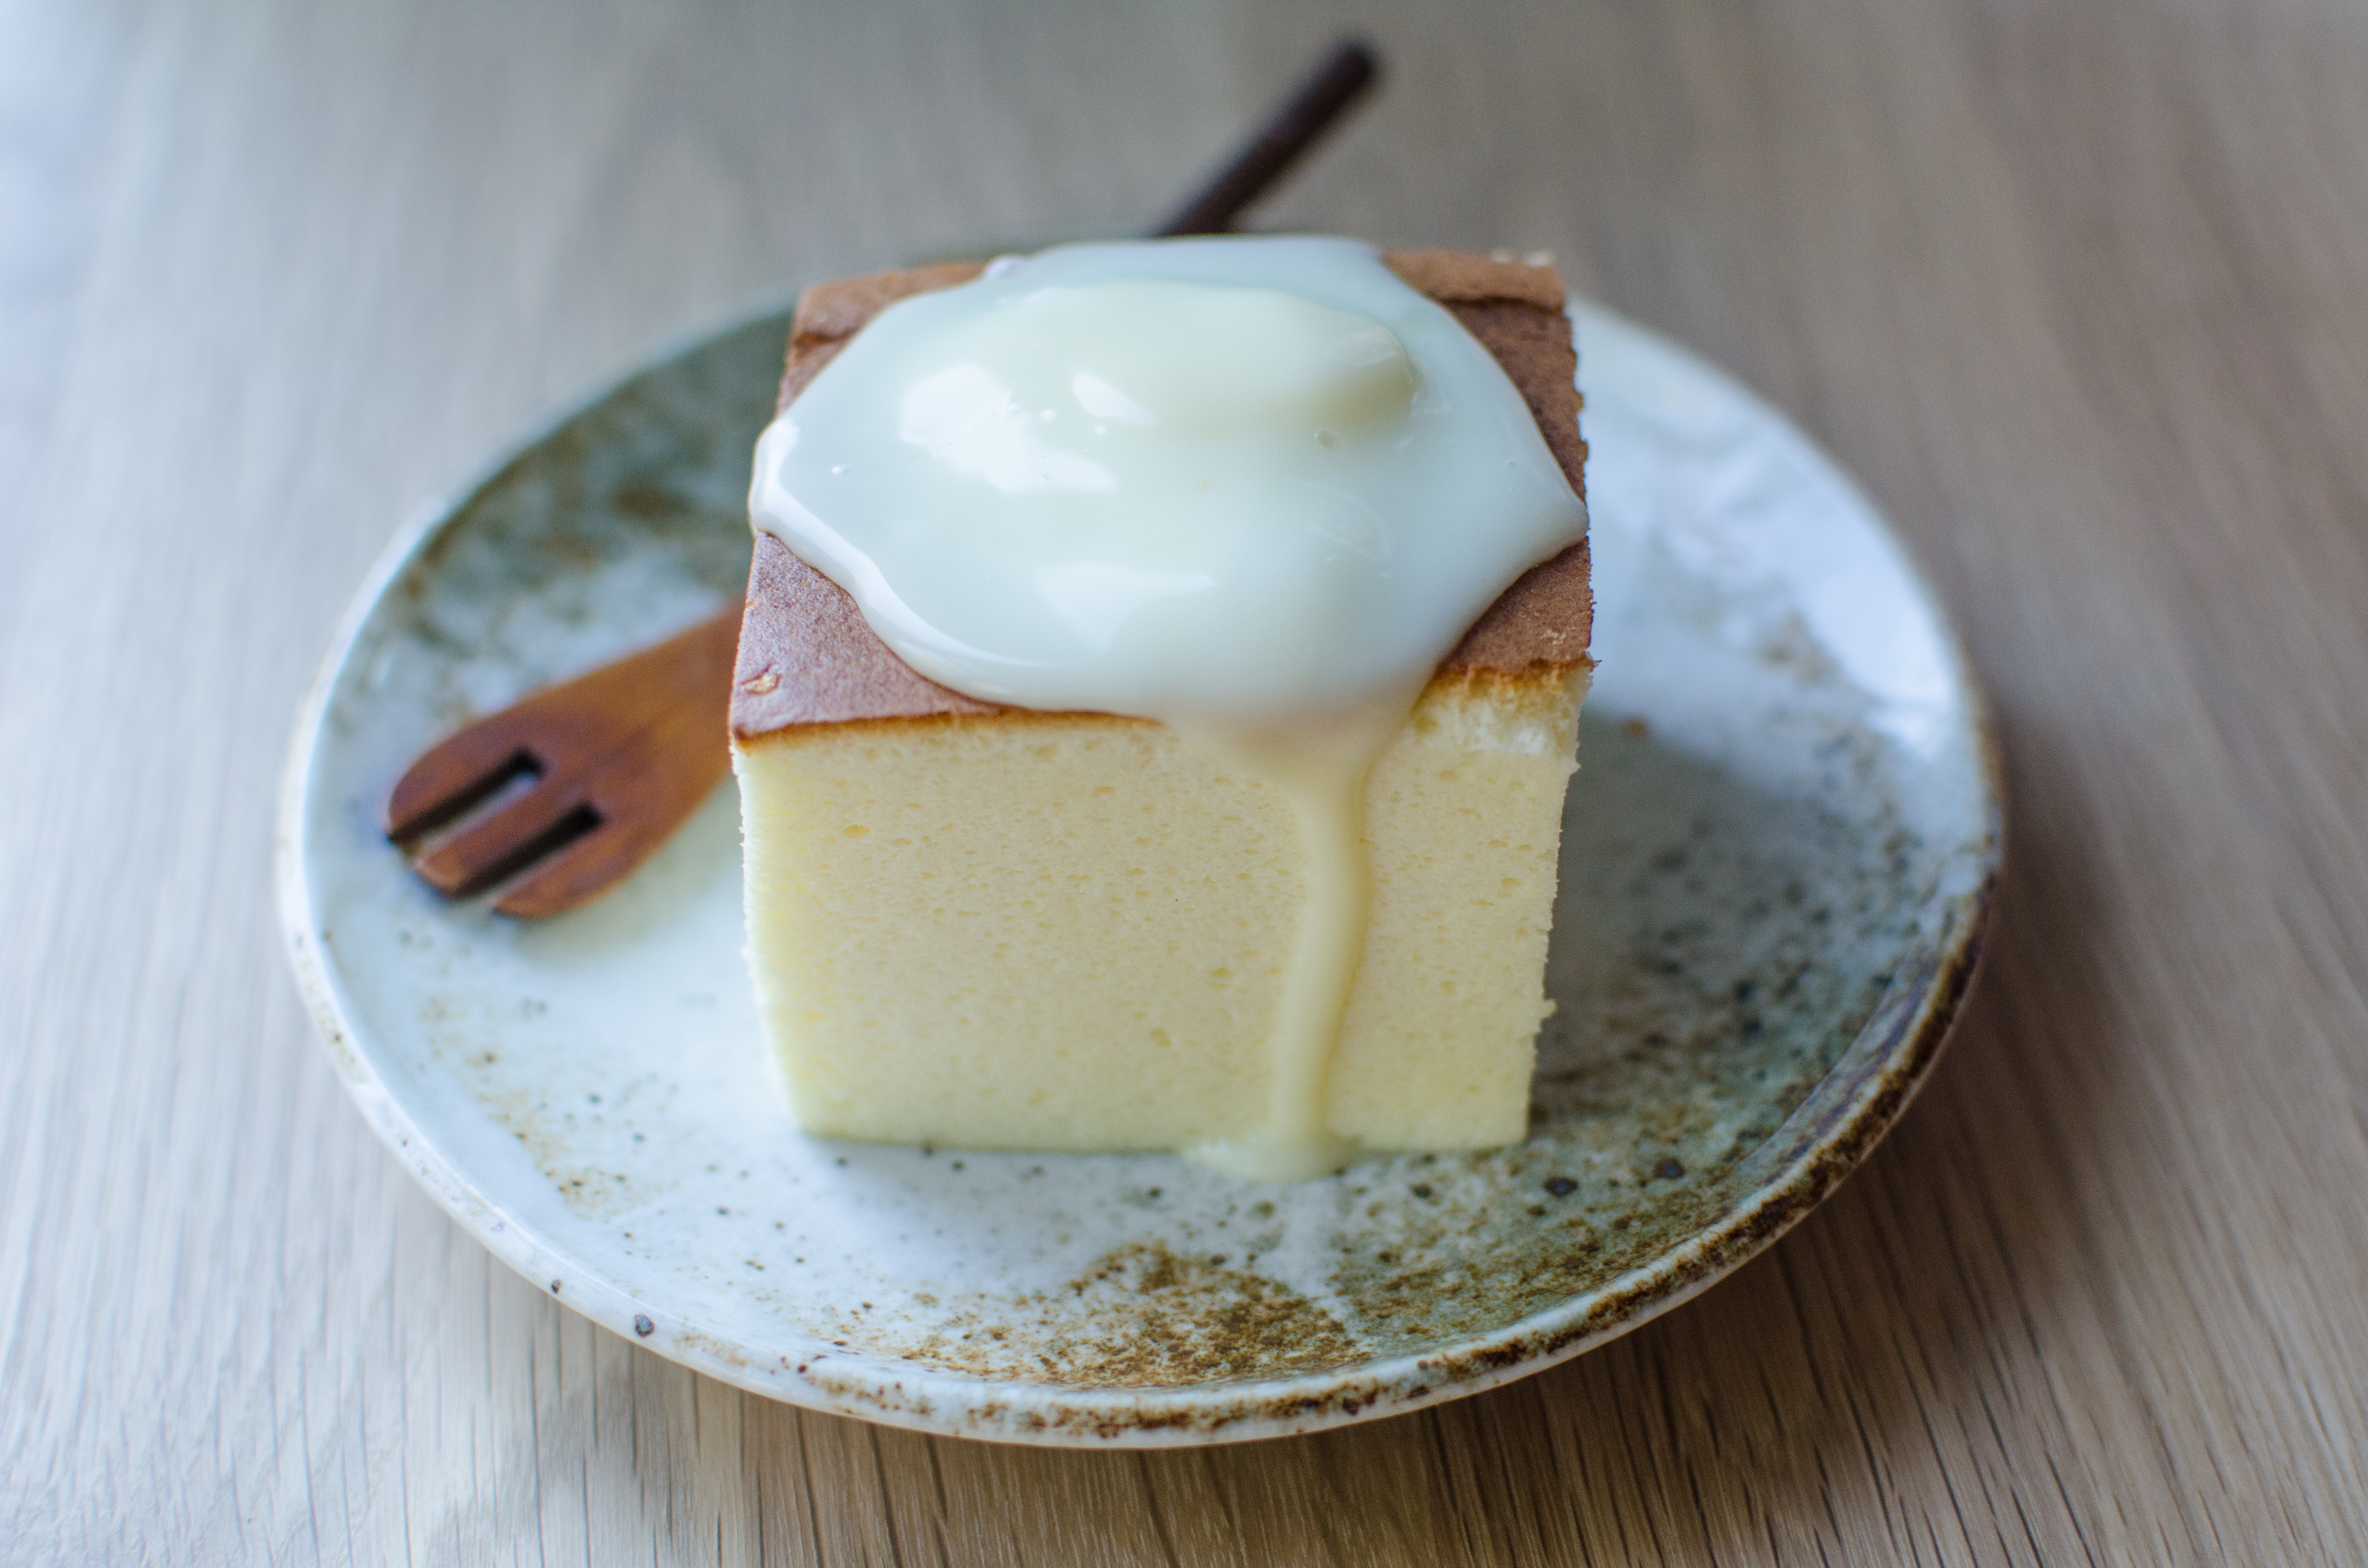 A slice of fluffy Japanese-style cheesecake sits on a speckled blue-ish plate, topped with a dollop of drippy cheese. A small wooden fork sits on the plate.